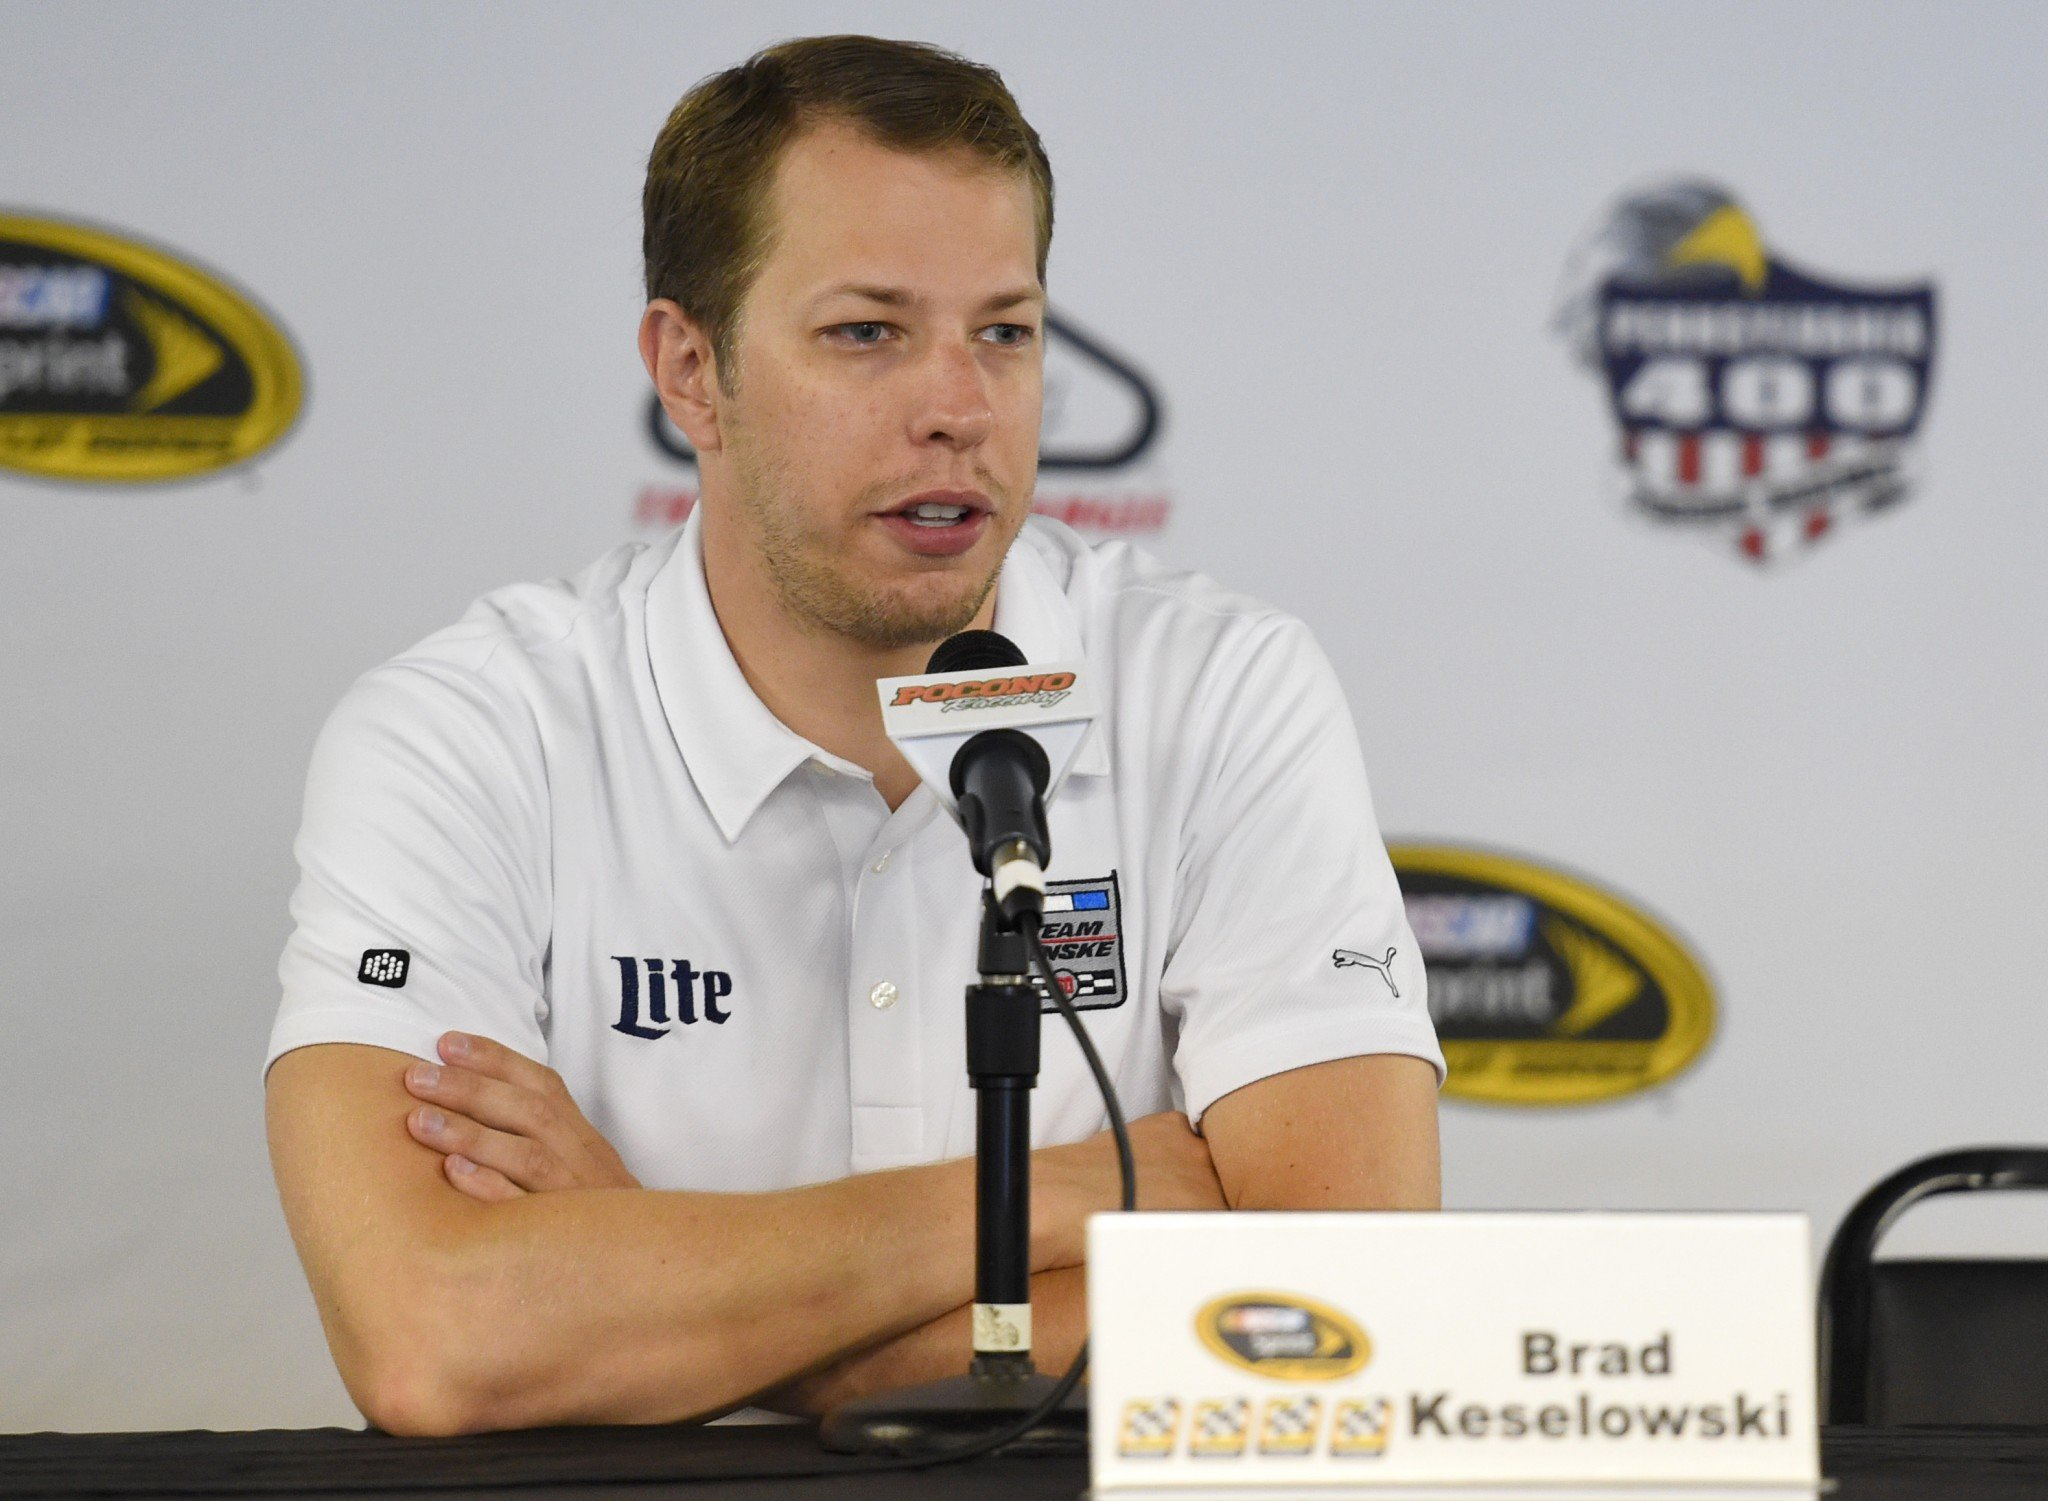 Keselowski is tied for the series lead in wins with four (Getty Images).